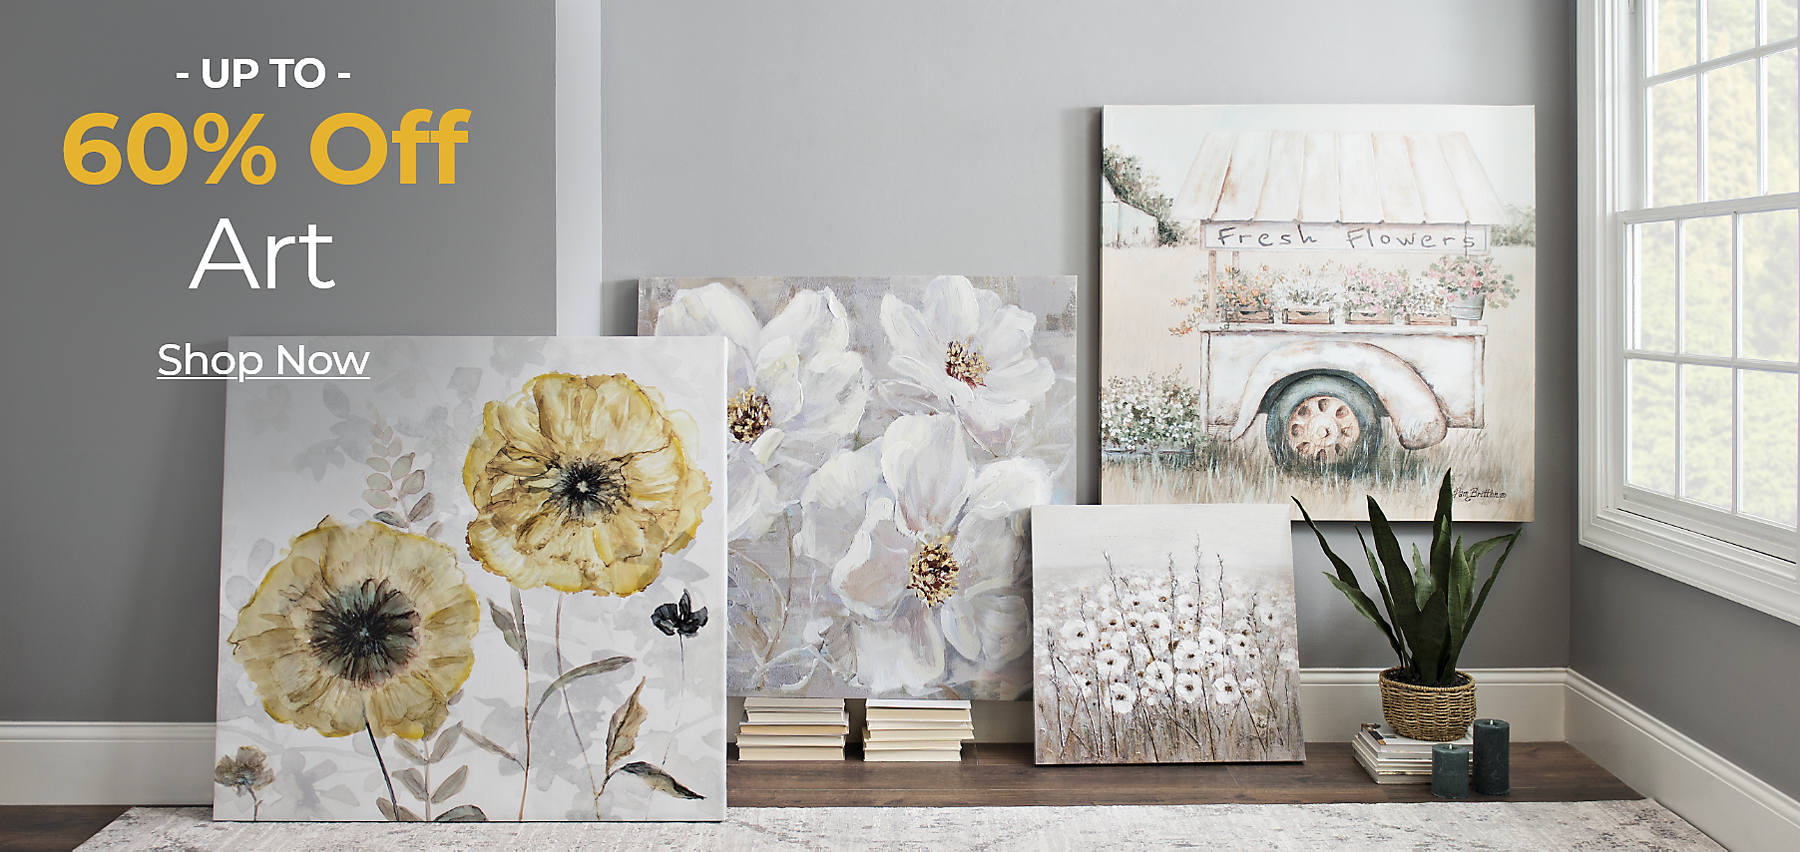 Up to 60% off Art Shop Now